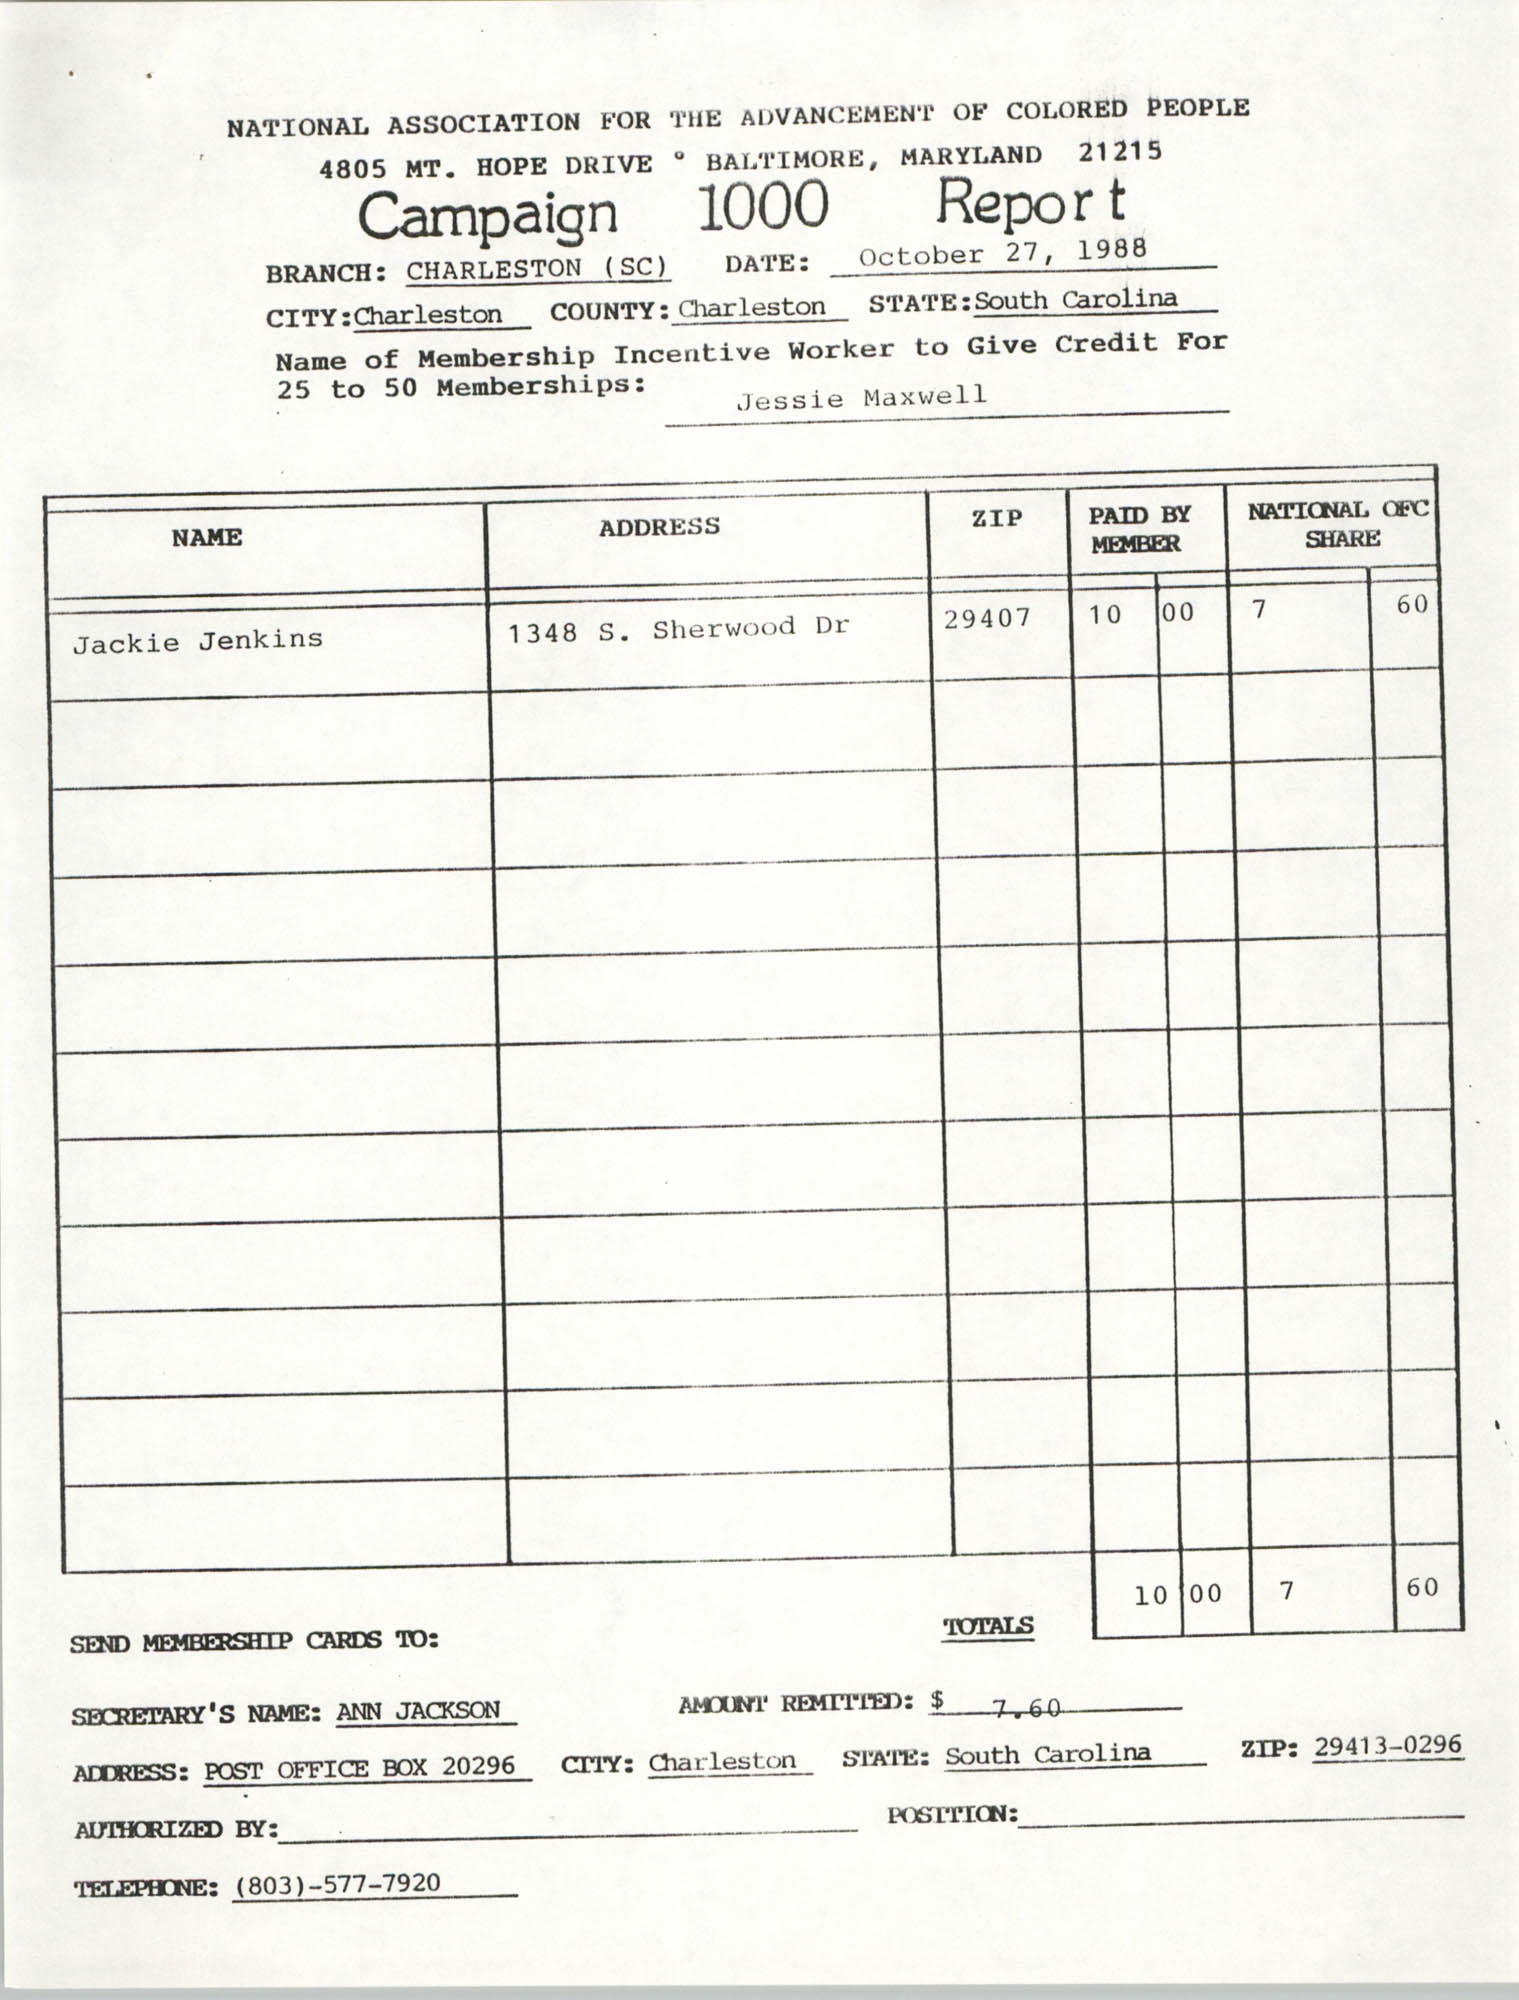 Campaign 1000 Report, Jessie Maxwell, Charleston Branch of the NAACP, October 27, 1988